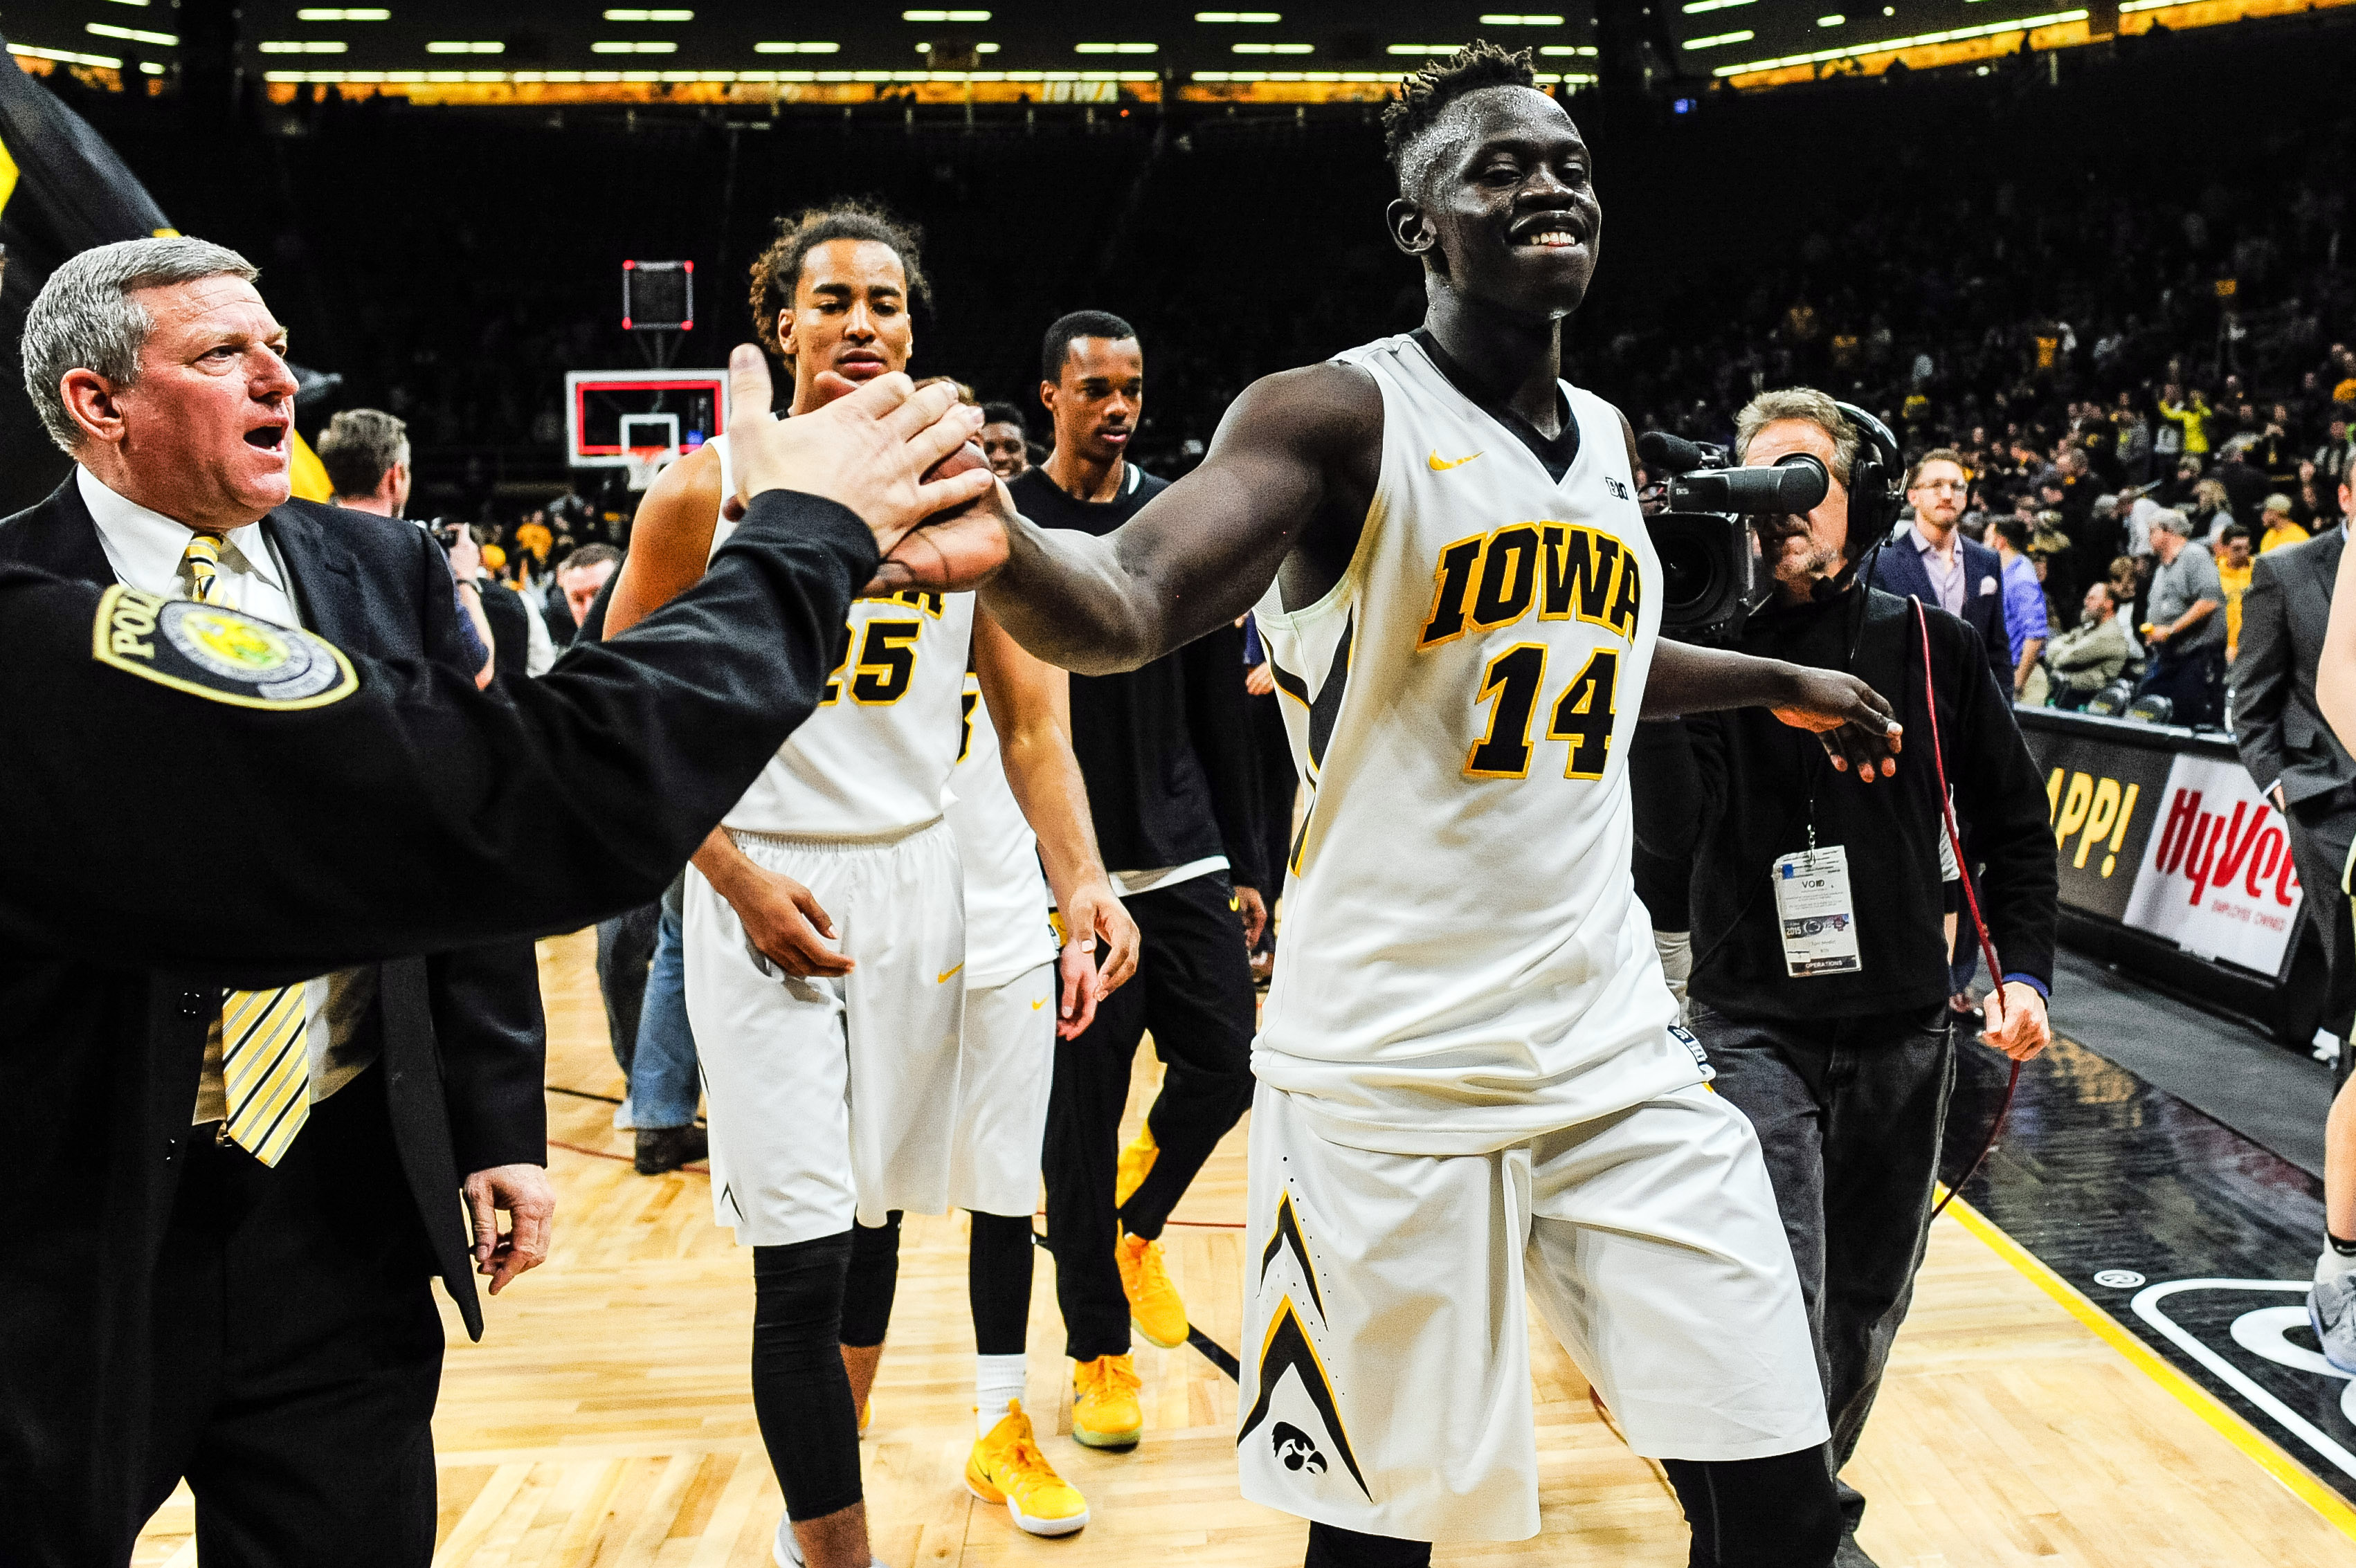 Jan 12, 2017; Iowa City, IA, USA; Iowa Hawkeyes guard Peter Jok (14) is congratulated coming off the court as assistant coach Kirk Speraw looks on after the game at Carver-Hawkeye Arena. Iowa won 83-78. Mandatory Credit: Jeffrey Becker-USA TODAY Sports